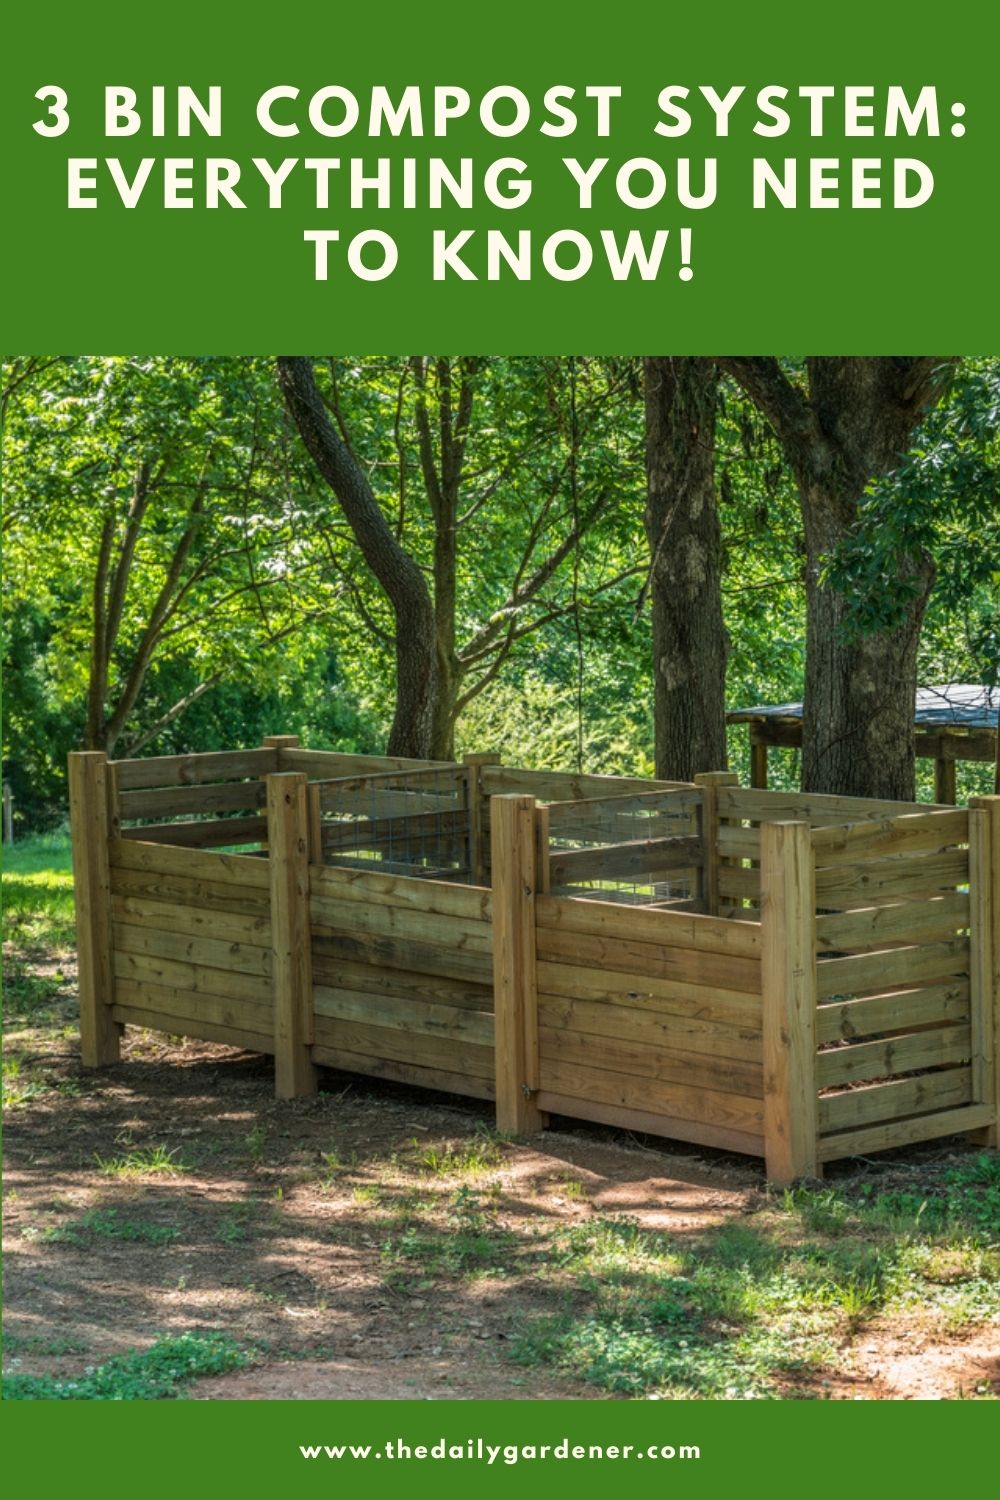 3 Bin Compost System Everything You Need to Know! 2